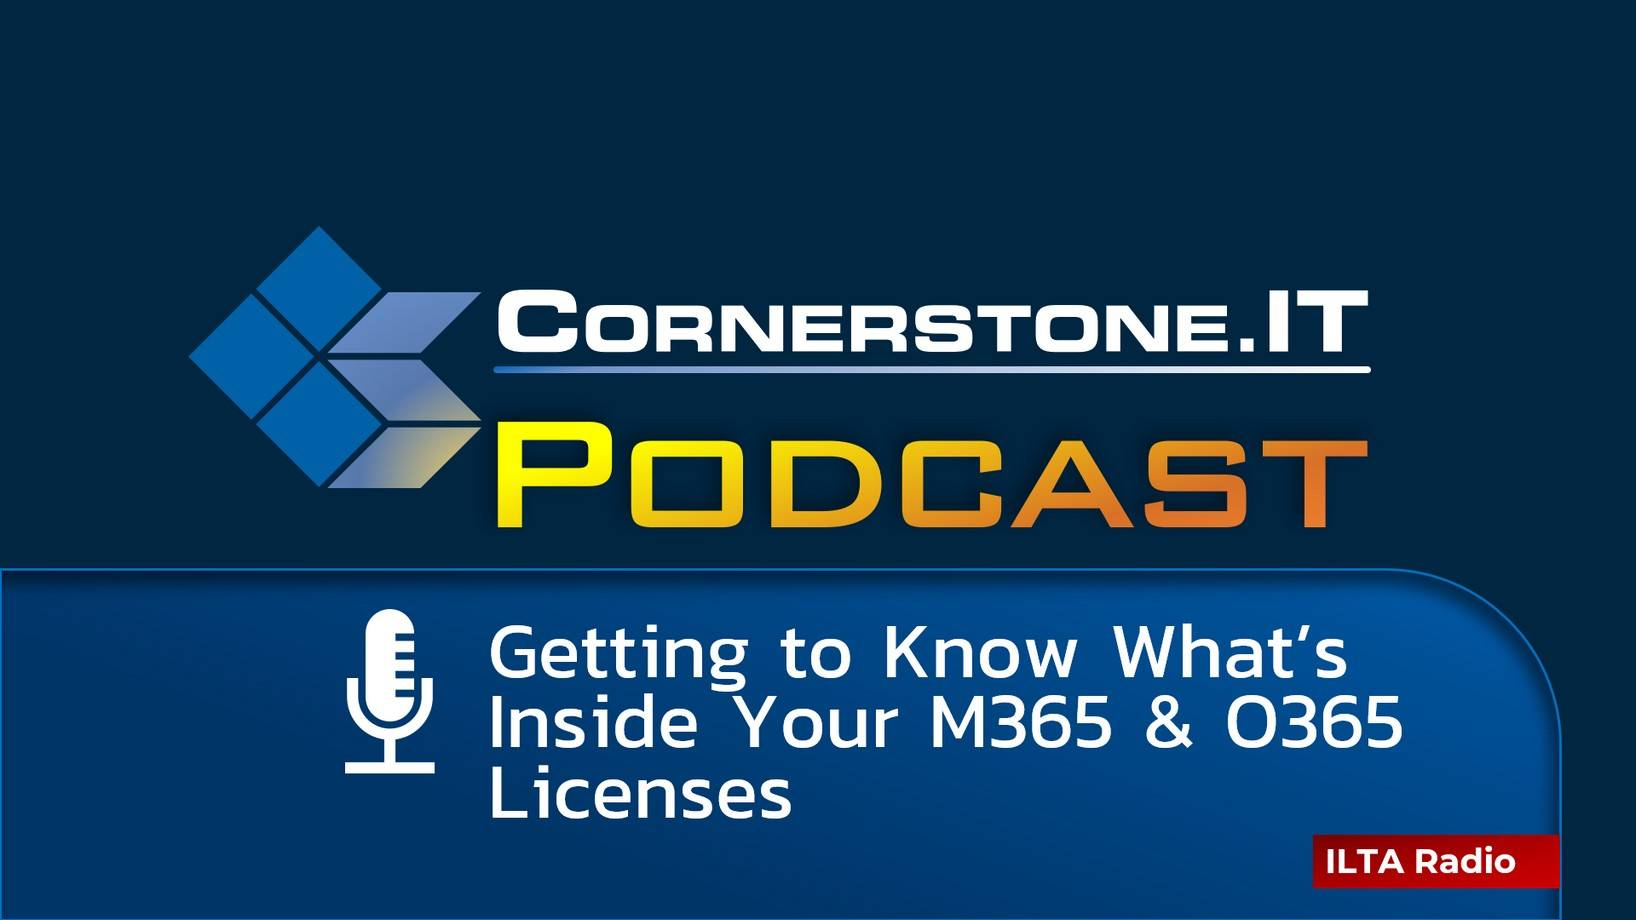 Getting to Know What's Inside Your M365 & O365 Licenses